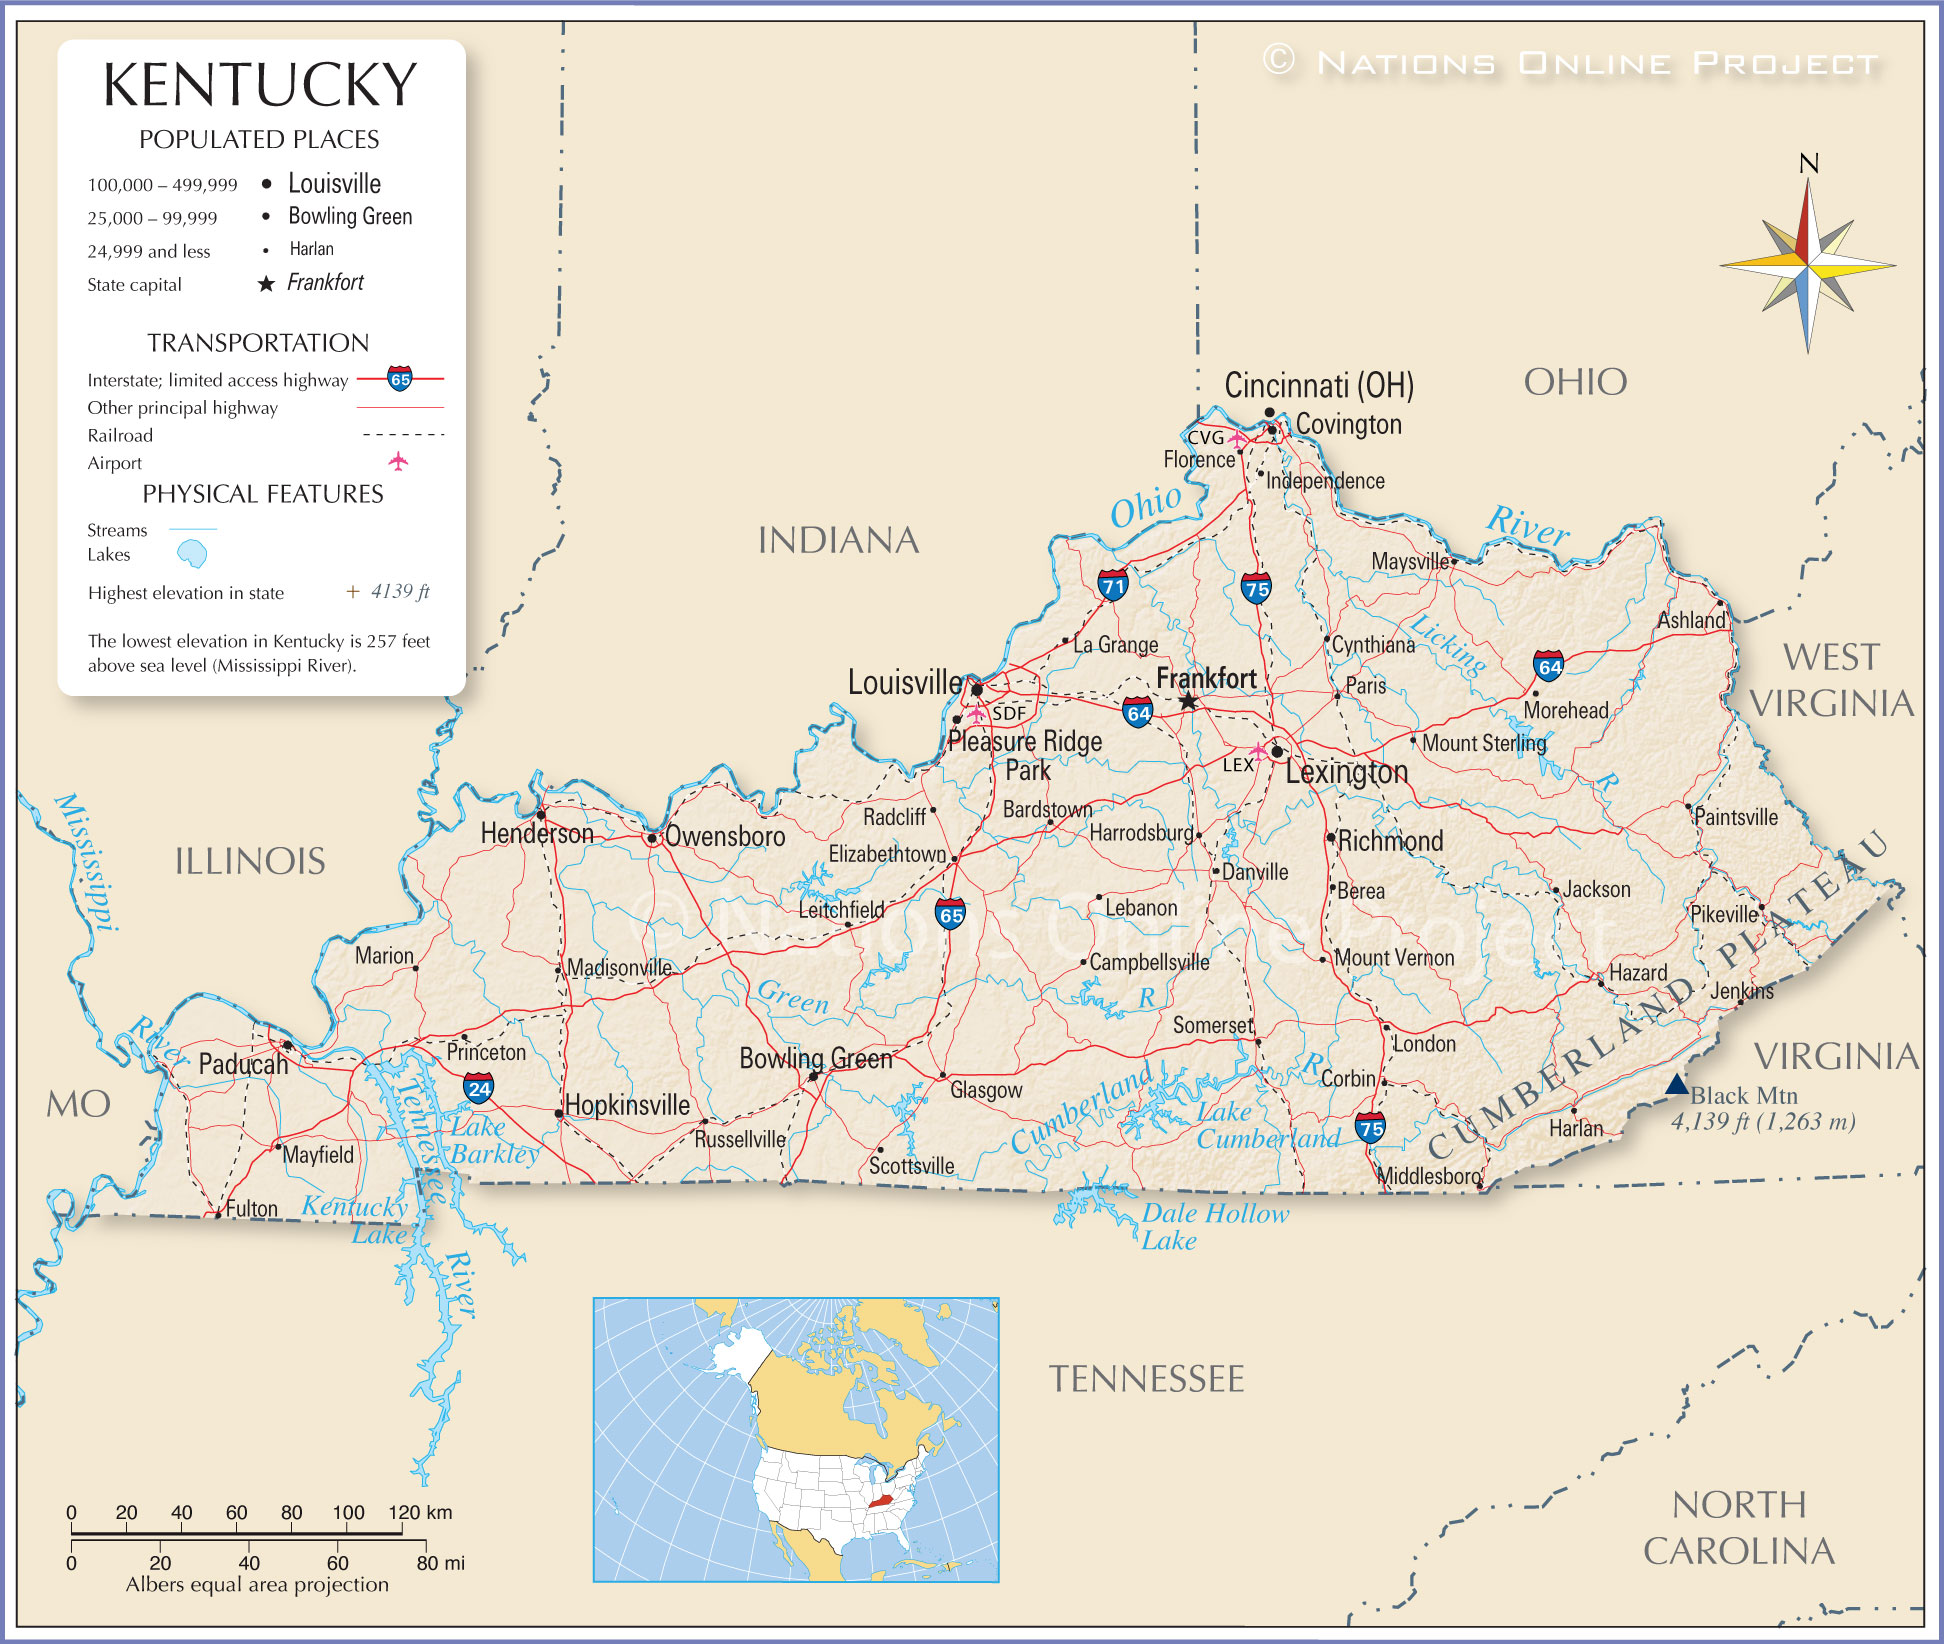 Reference Maps of Kentucky, USA - Nations Online Project on georgia map, maine map, montana map, idaho map, mississippi map, land between the lakes map, north carolina map, kansas map, ky map, michigan map, state map, louisiana map, florida map, usa map, texas map, midwest map, maryland map, ohio map, south carolina map, illinois map, tennessee map, new jersey map, california map, virginia map, colorado map, indiana map, hawaii map, missouri map, minnesota map, iowa map,